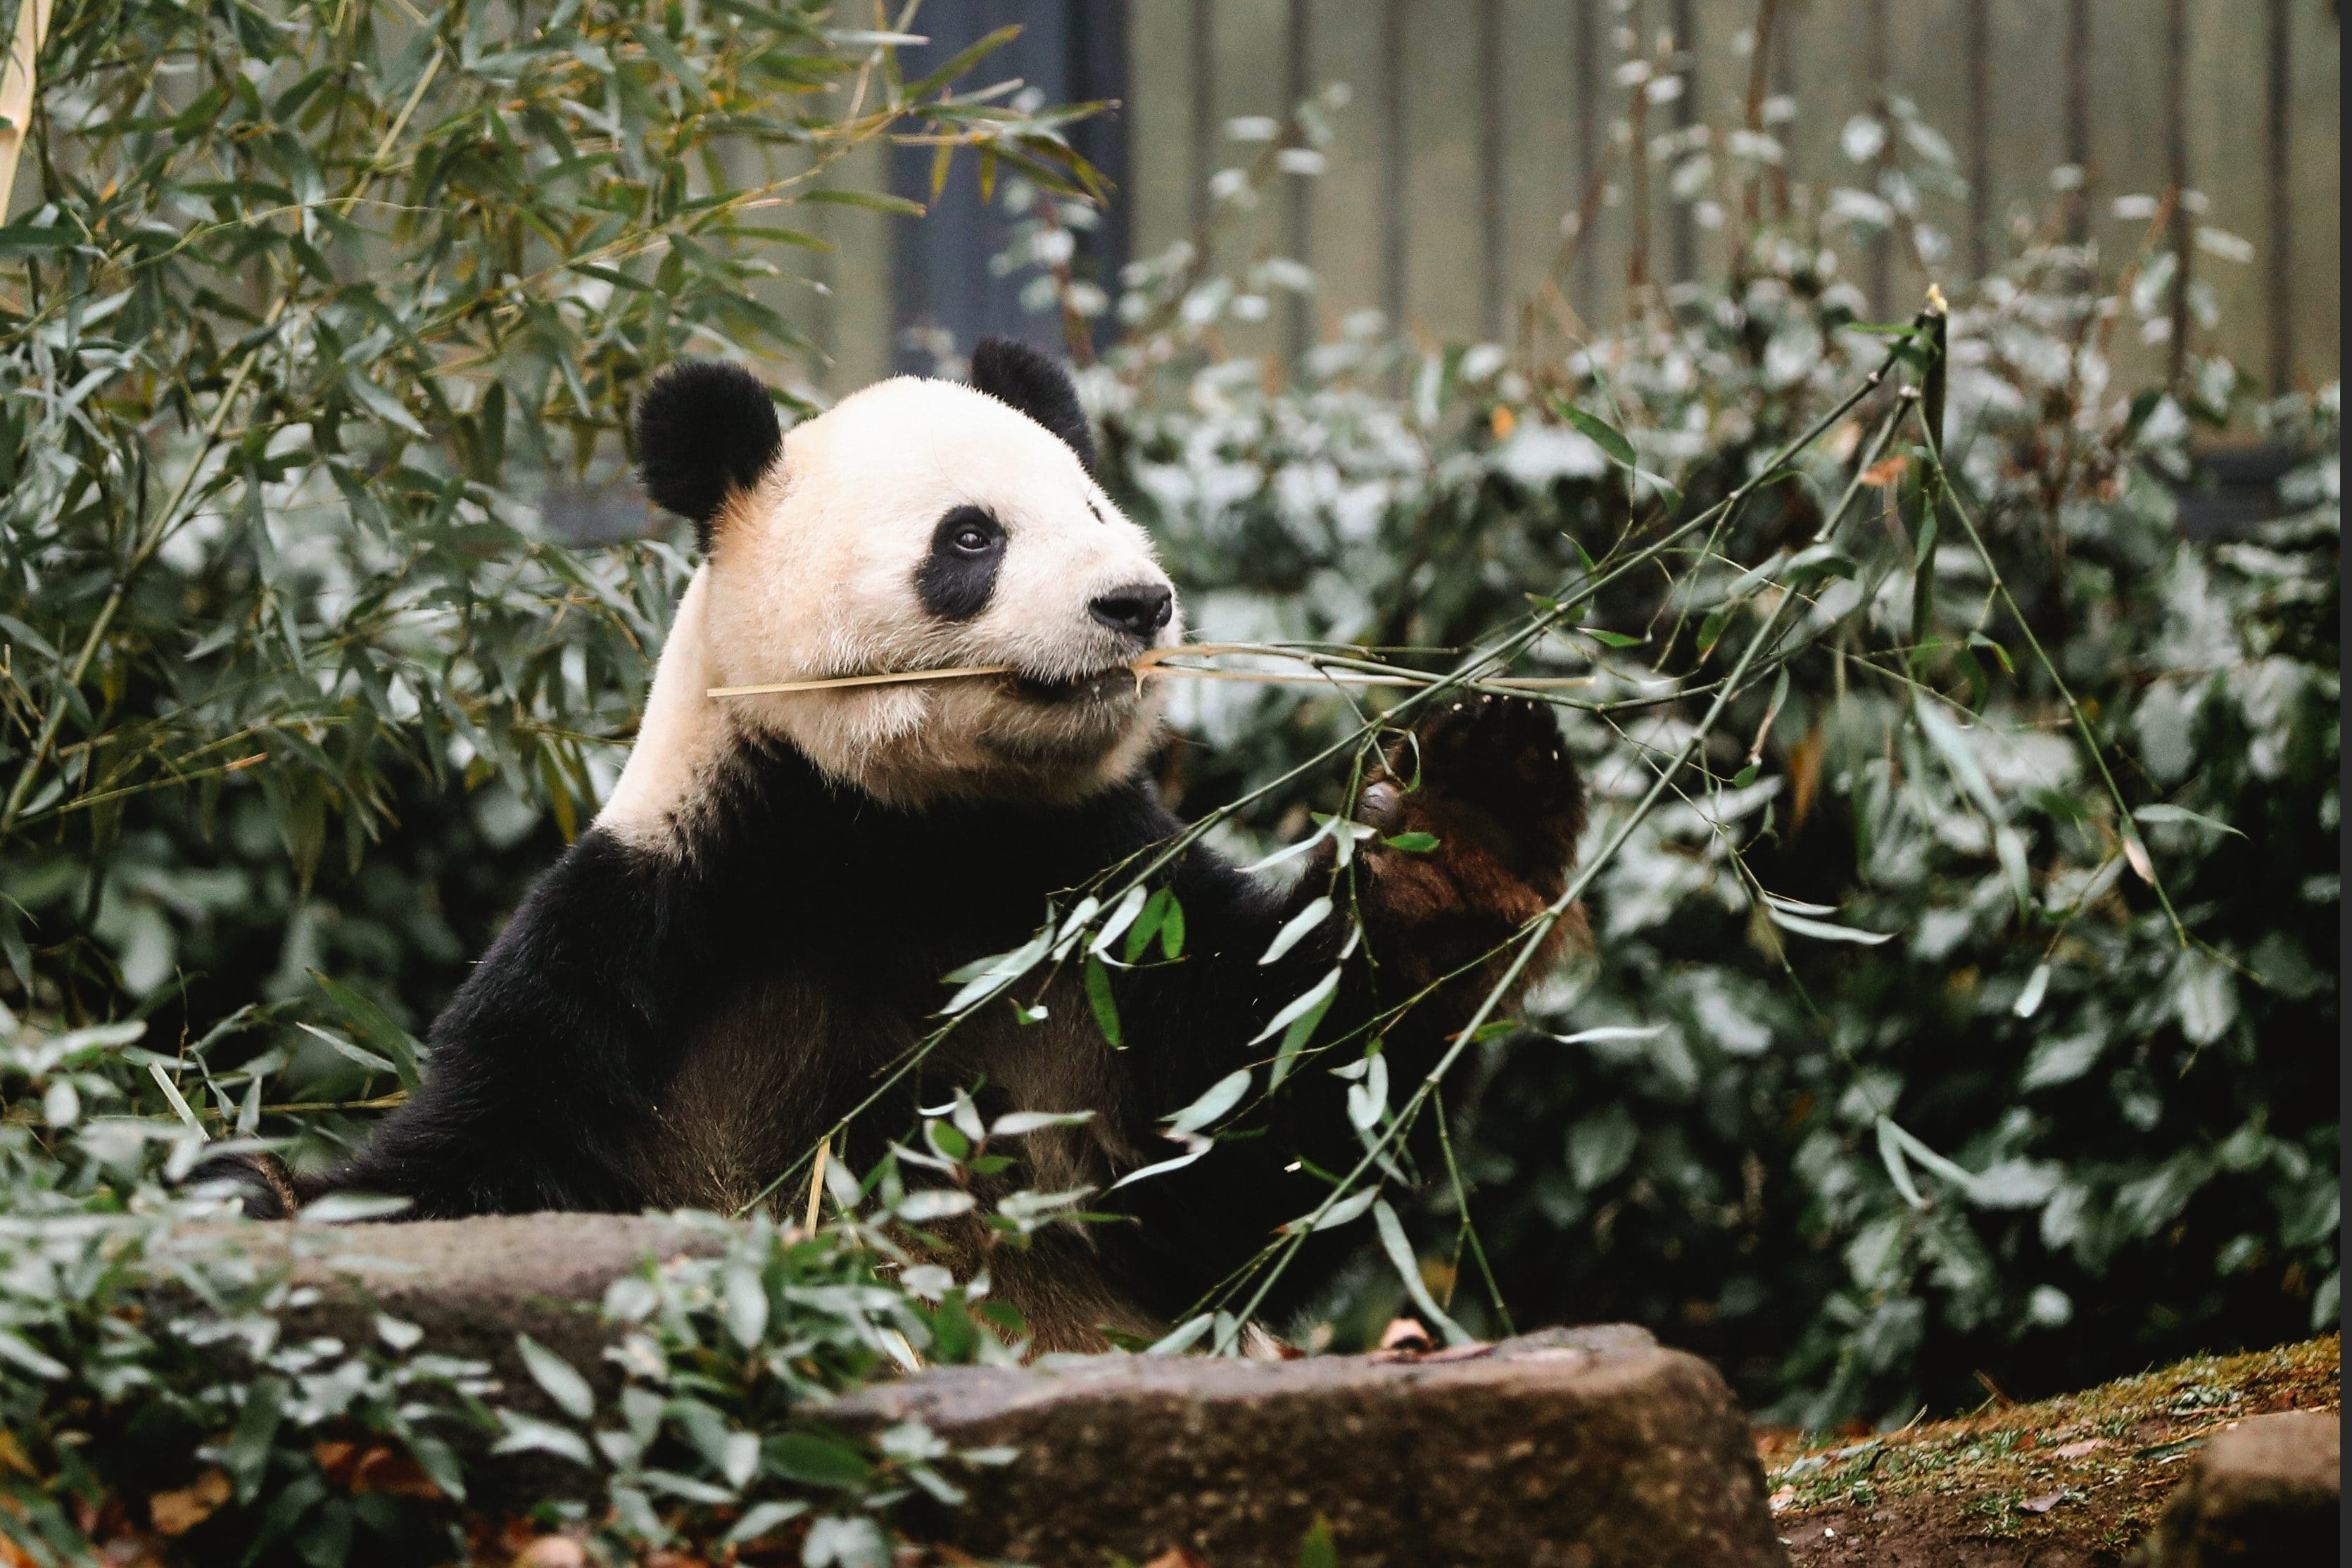 A panda sat chewing a leafy branch at Ueno Zoo